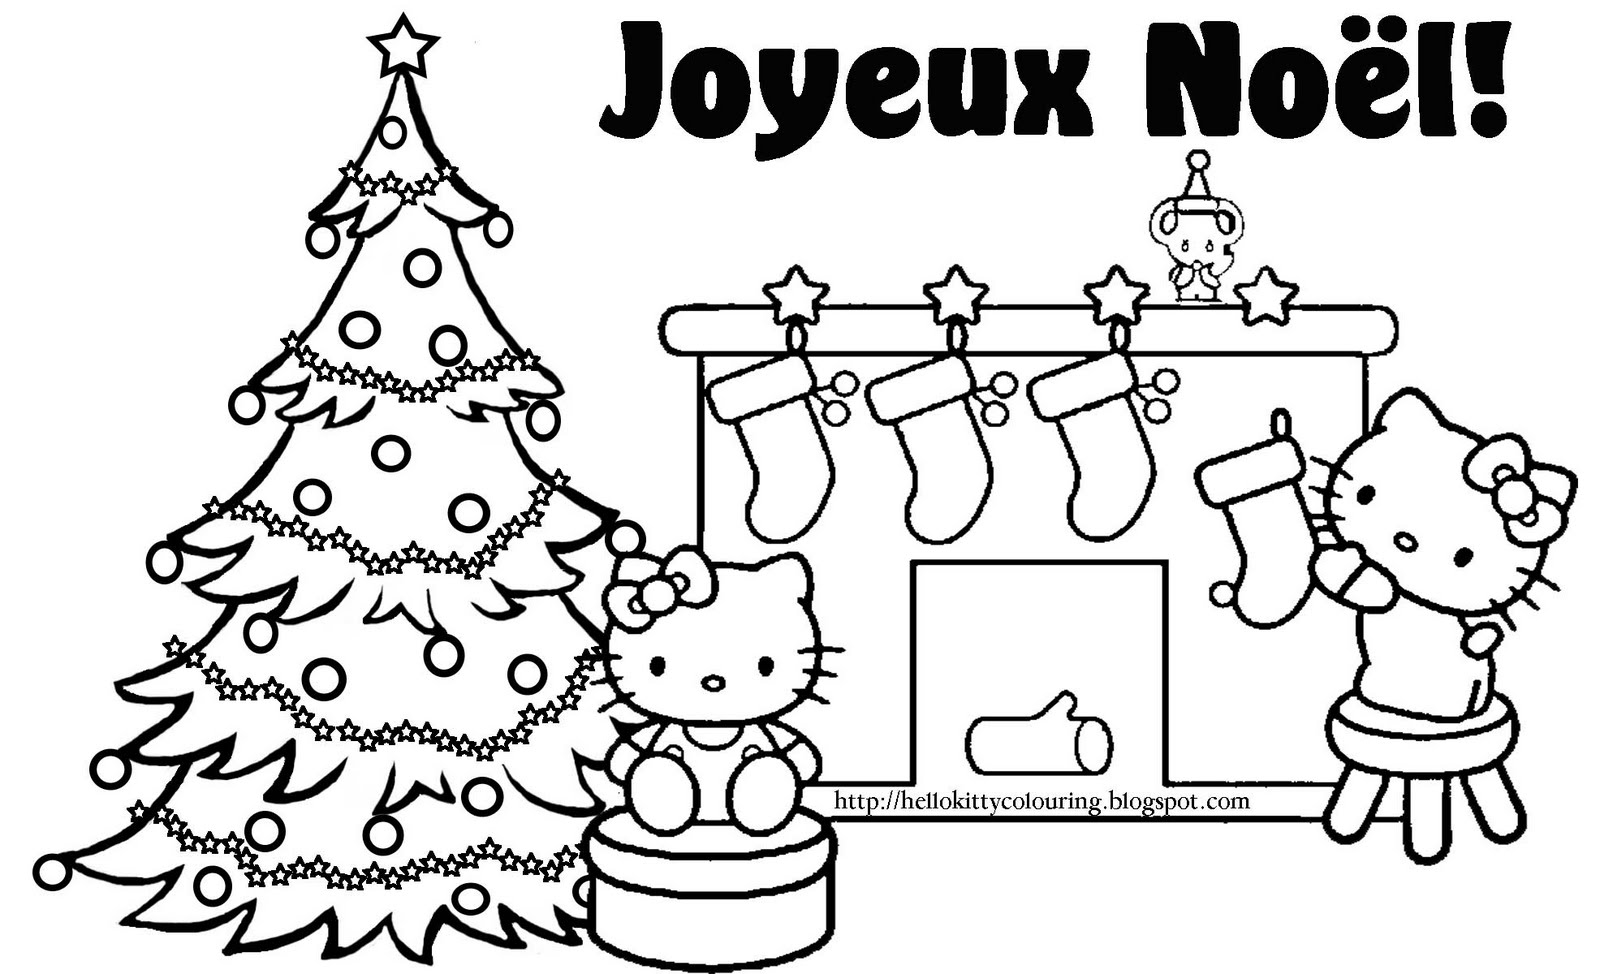 coloriage hello kitty noel les beaux dessins de meilleurs dessins imprimer et colorier. Black Bedroom Furniture Sets. Home Design Ideas